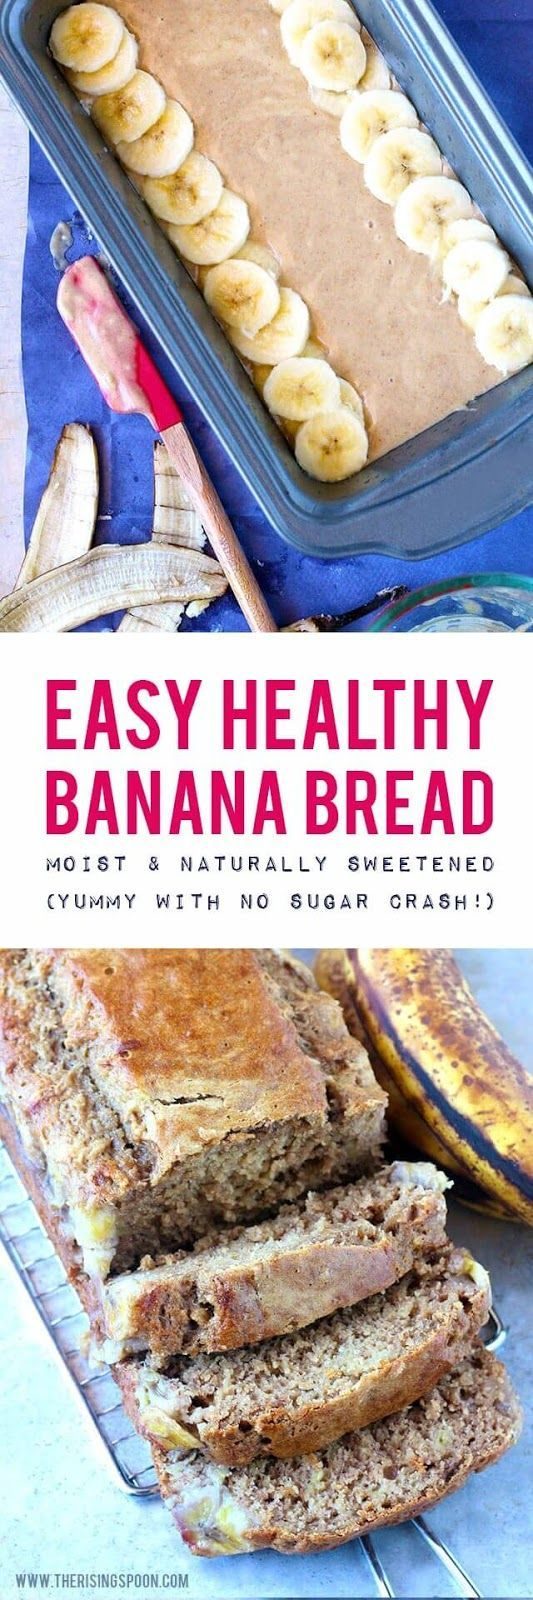 A healthy real food banana bread recipe made with a natural sweetener and higher protein flour so you can enjoy a slice or two of moist & fragrant banana bread any time of the day without going overboard on sugar. (Dairy-Free)